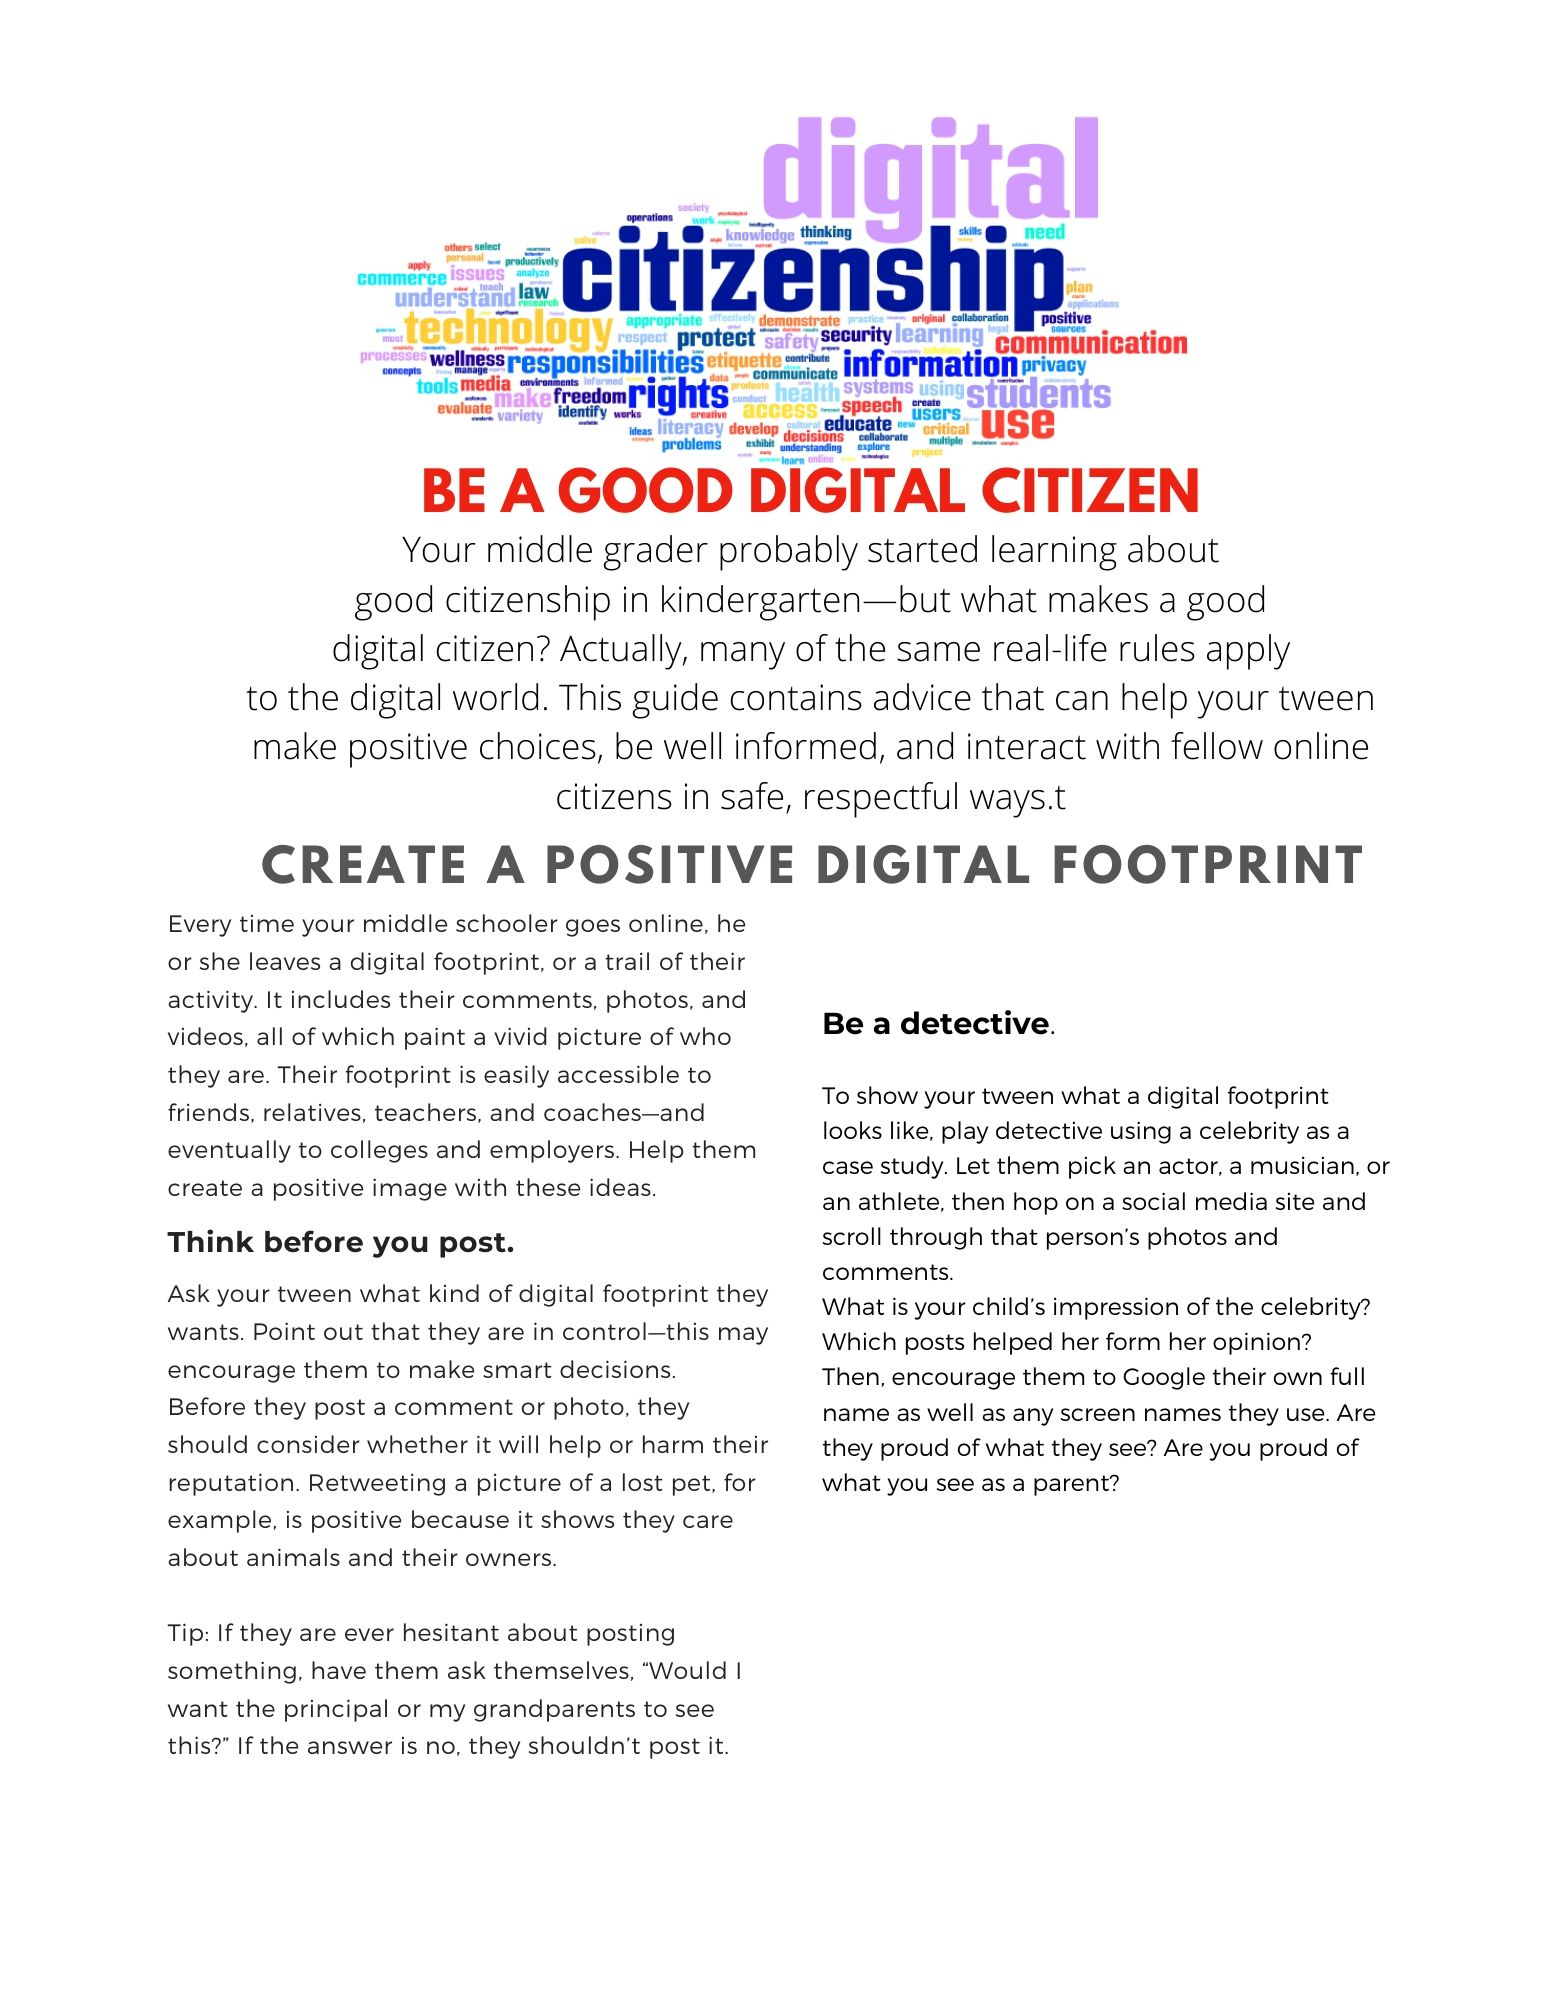 1580314285-digital_citizenship_-_digital_footprint